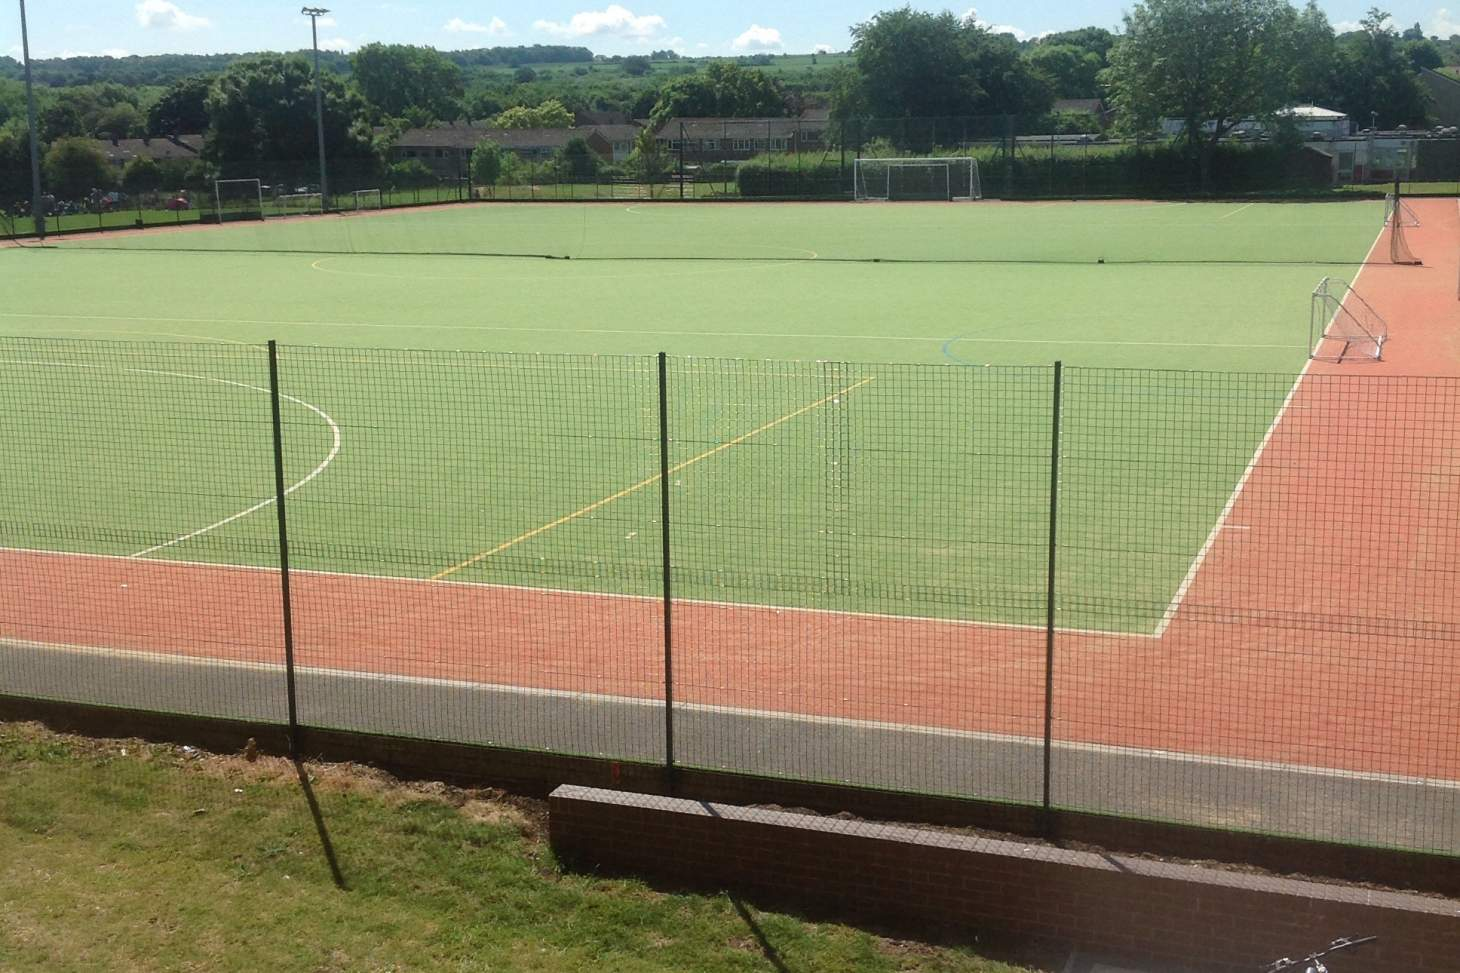 Wellsway Sports Centre 11 a side | Astroturf football pitch